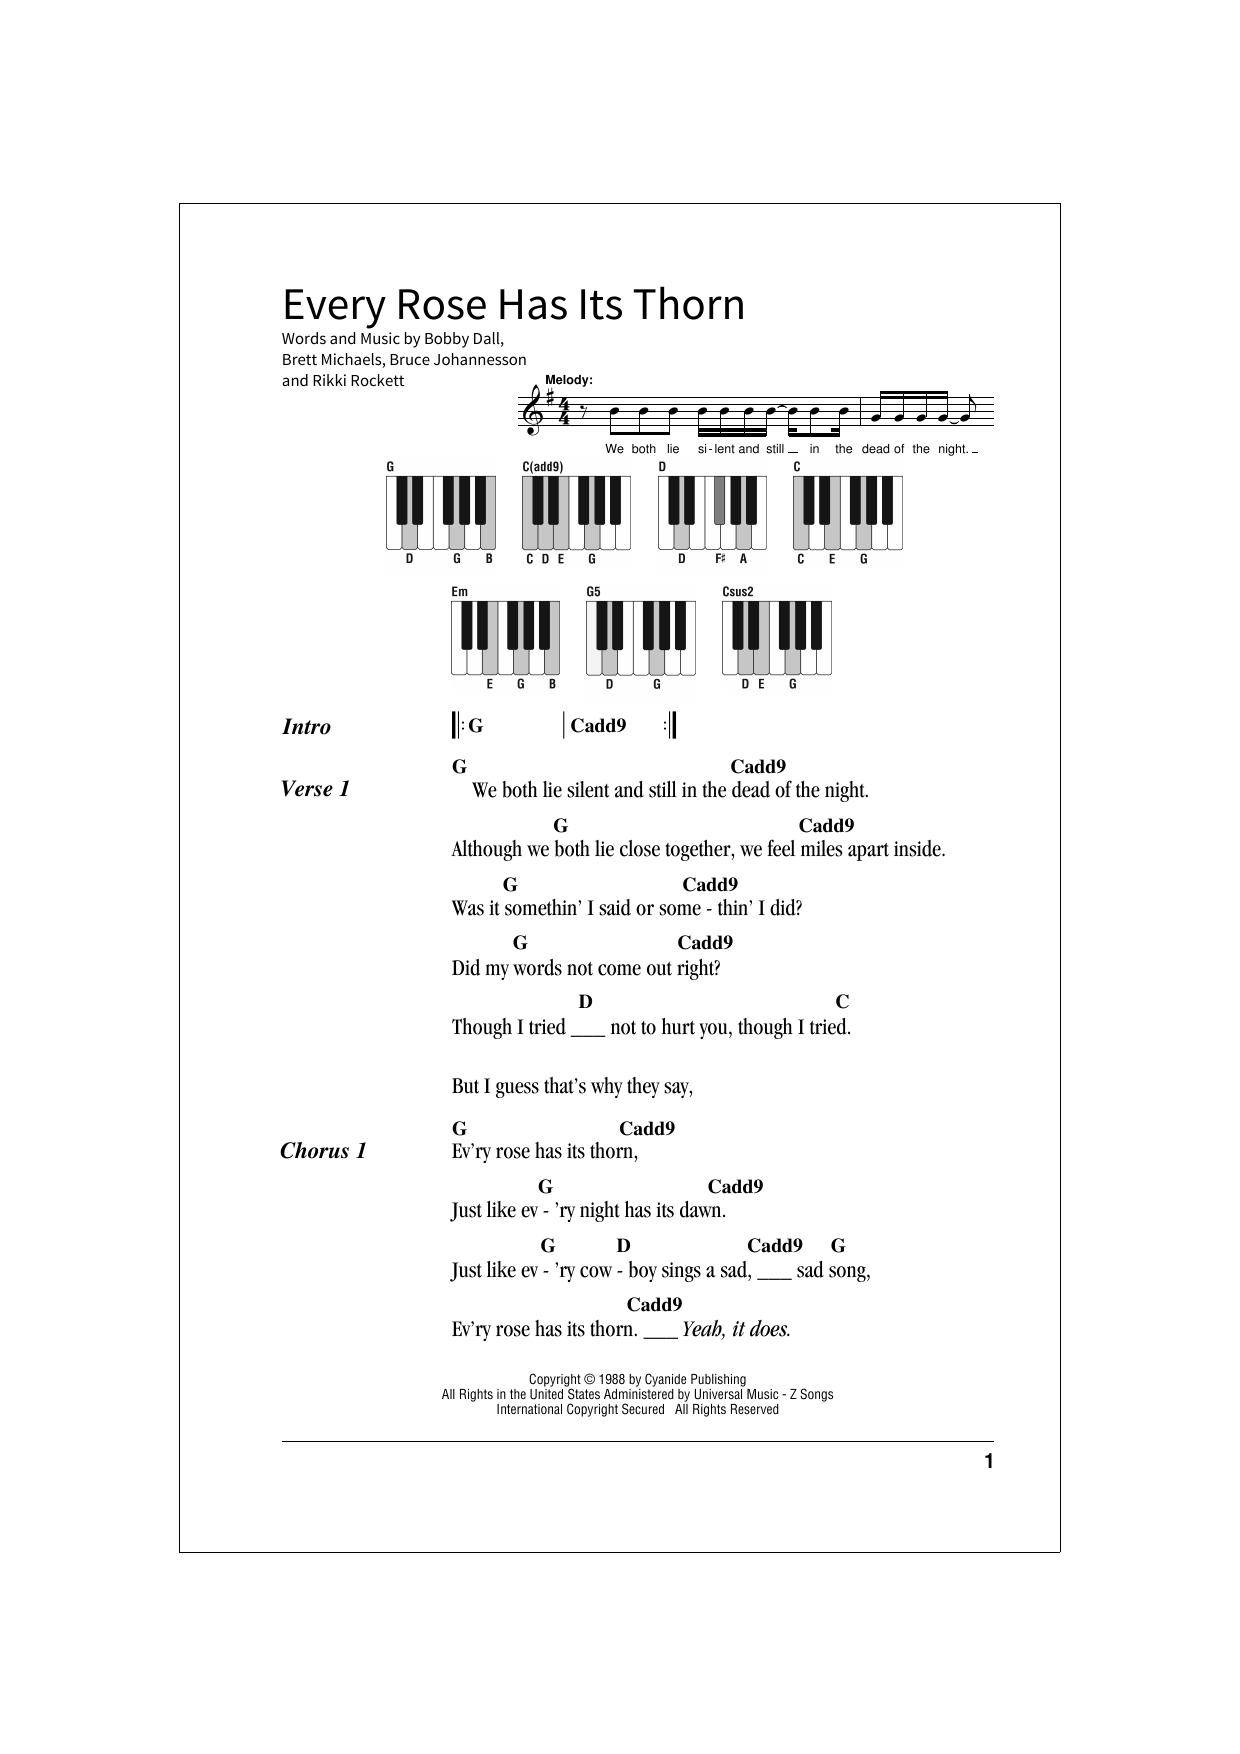 Every Rose Has Its Thorn Chords Every Rose Has Its Thorn School Of Rock Keys Print Sheet Music